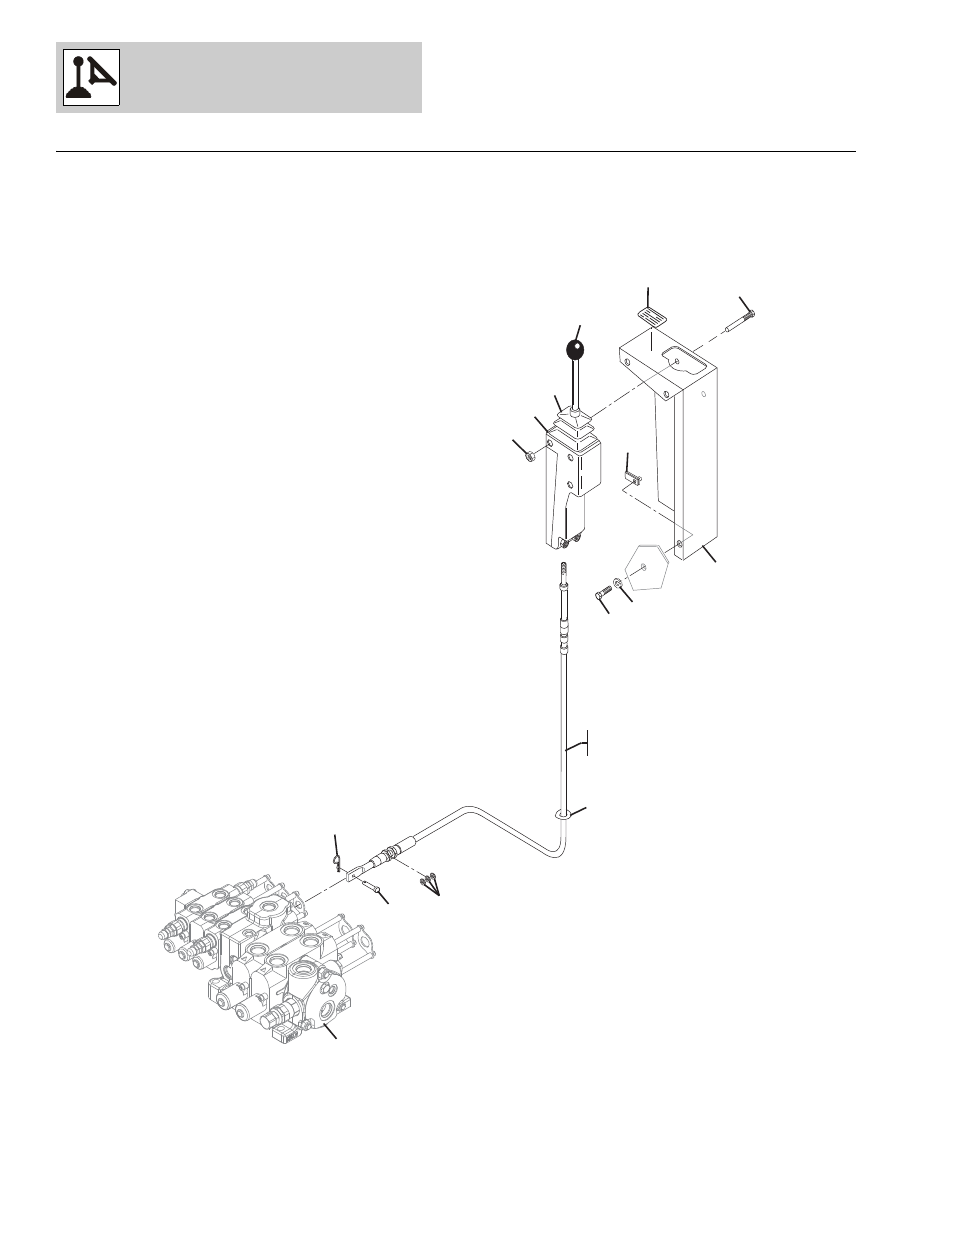 Figure 7-7 auxiliary hydraulic control, Auxiliary